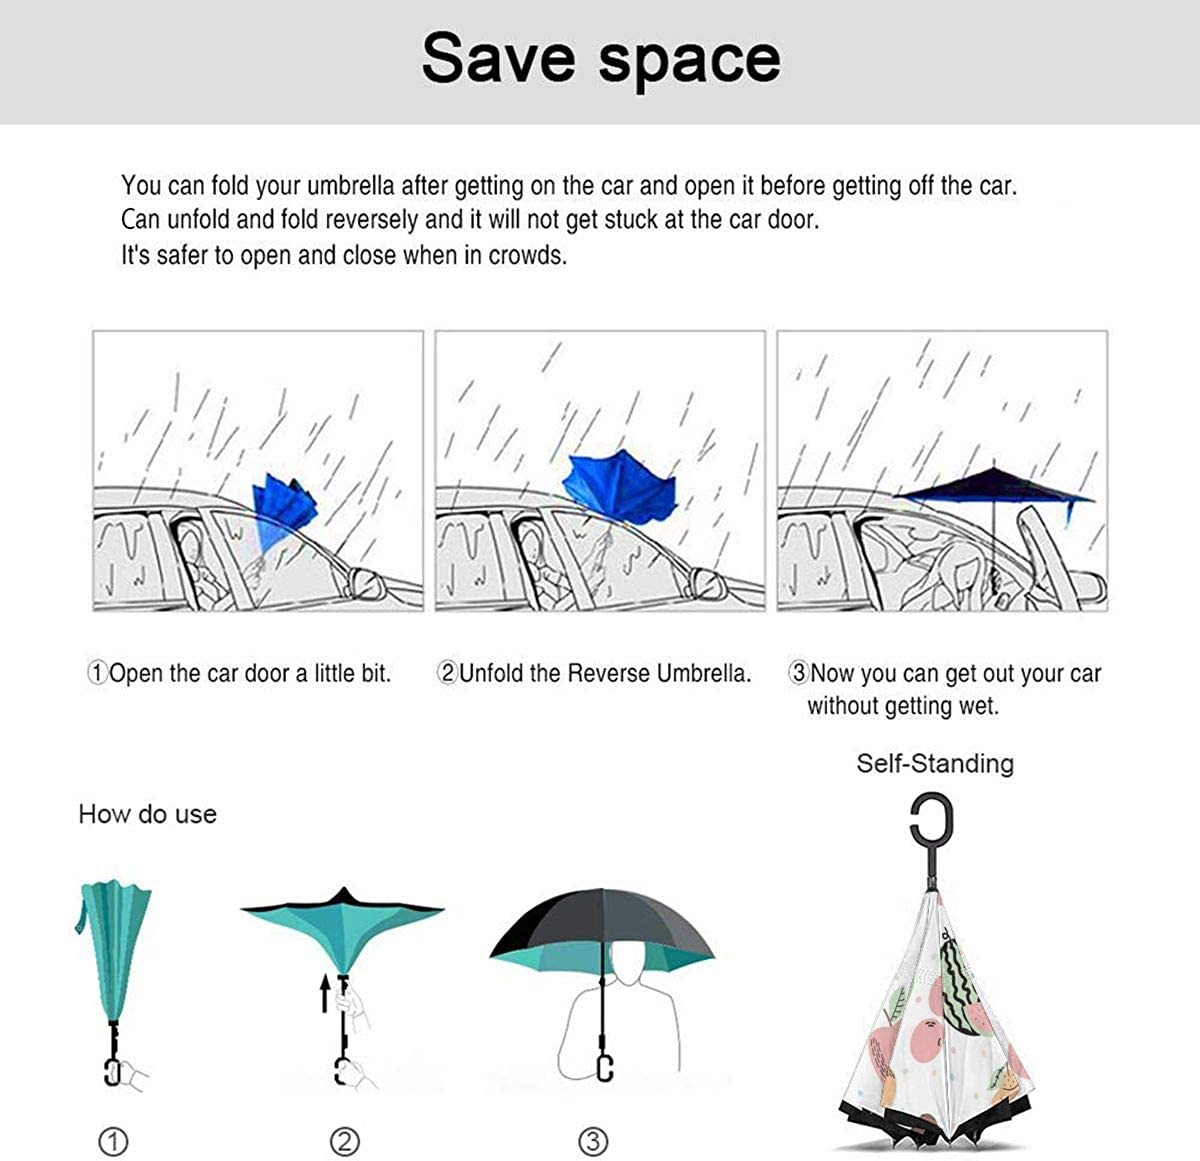 Cute With Exotic Fruits Cartoon Vector Image Reverse Umbrella Double Layer Inverted Umbrellas For Car Rain Outdoor With C-Shaped Handle Personalized